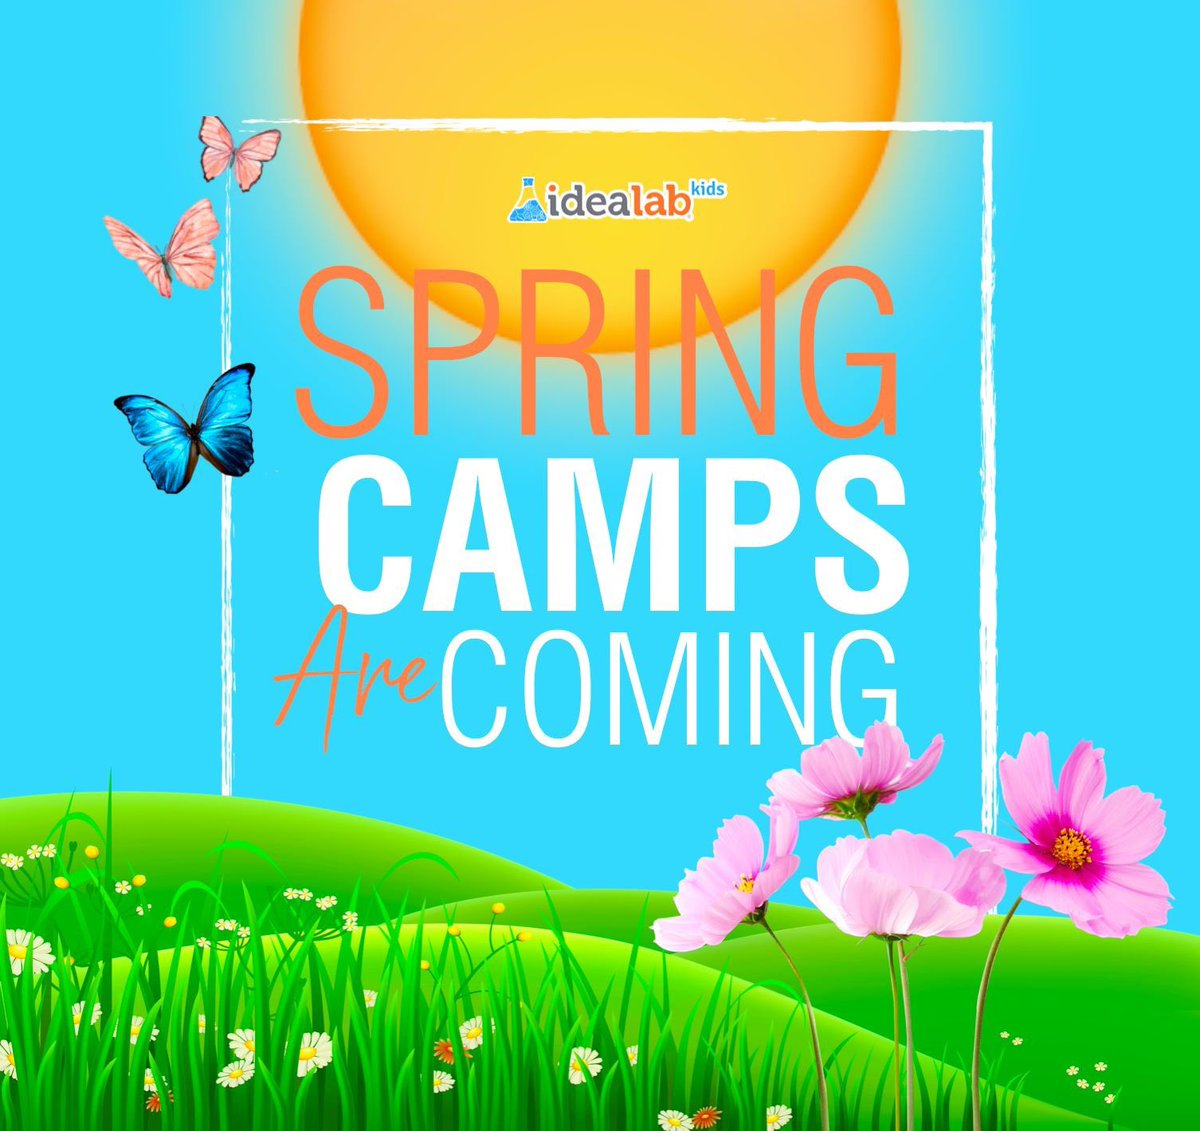 The promise of spring's arrival is enough to get anyone Excited! As Spring is around the corner we are preparing to have the best Camps ever!  #IDEALabKidscentralhouston #STEAM #RockYourGreyMatter #SpringIsComing #SpringBreak #SpringCamps #houstonkids #bellairepic.twitter.com/Gn0d8CofBl